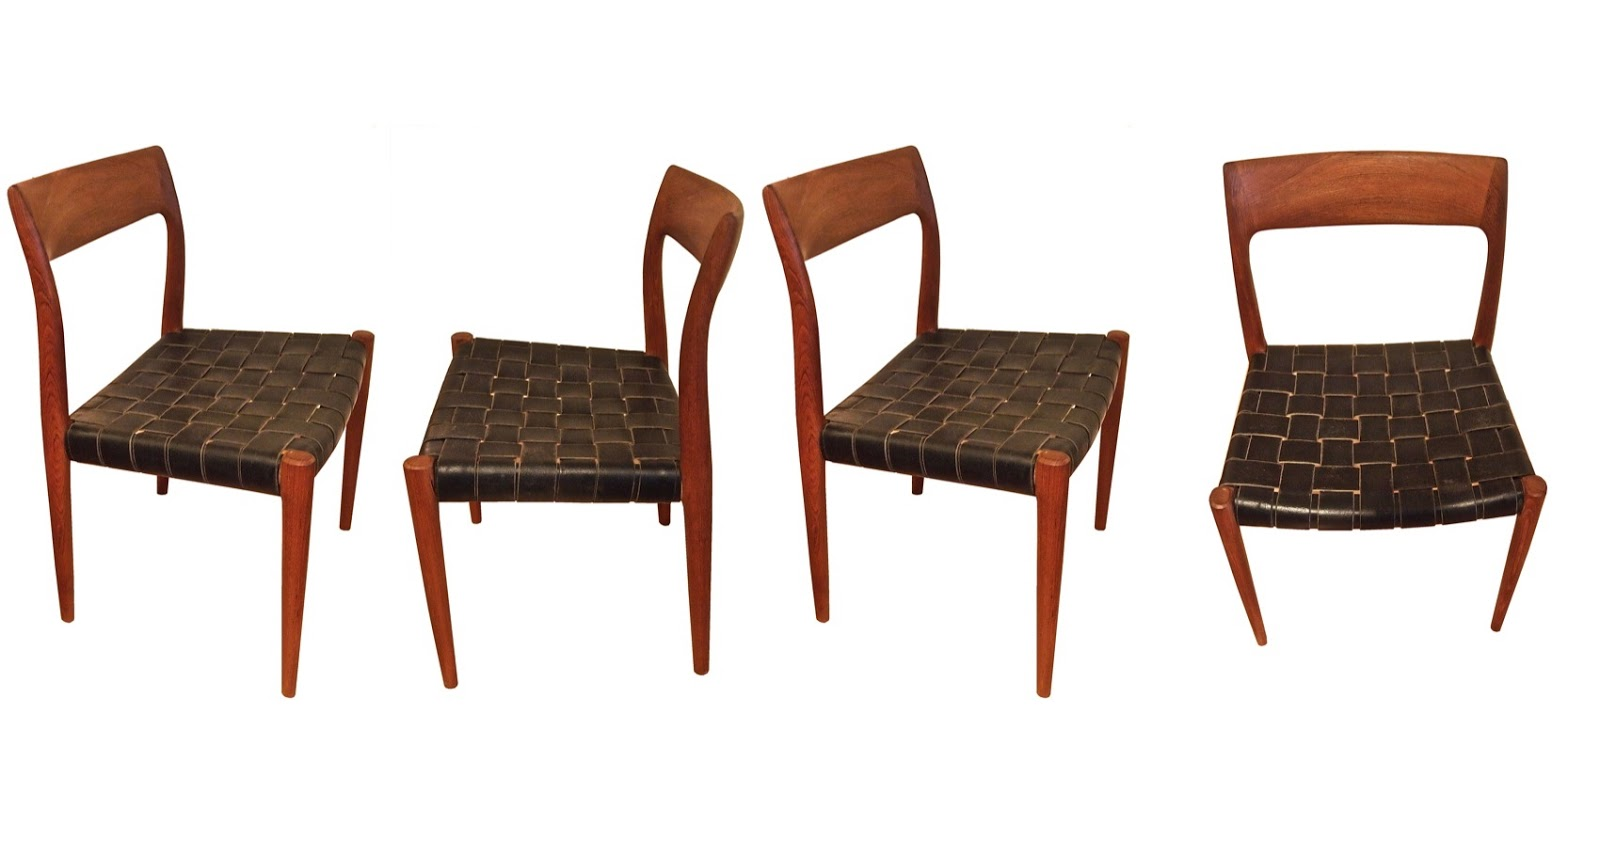 Dining chairs showroom montr al for Yverdon meubles jl zbinden s a